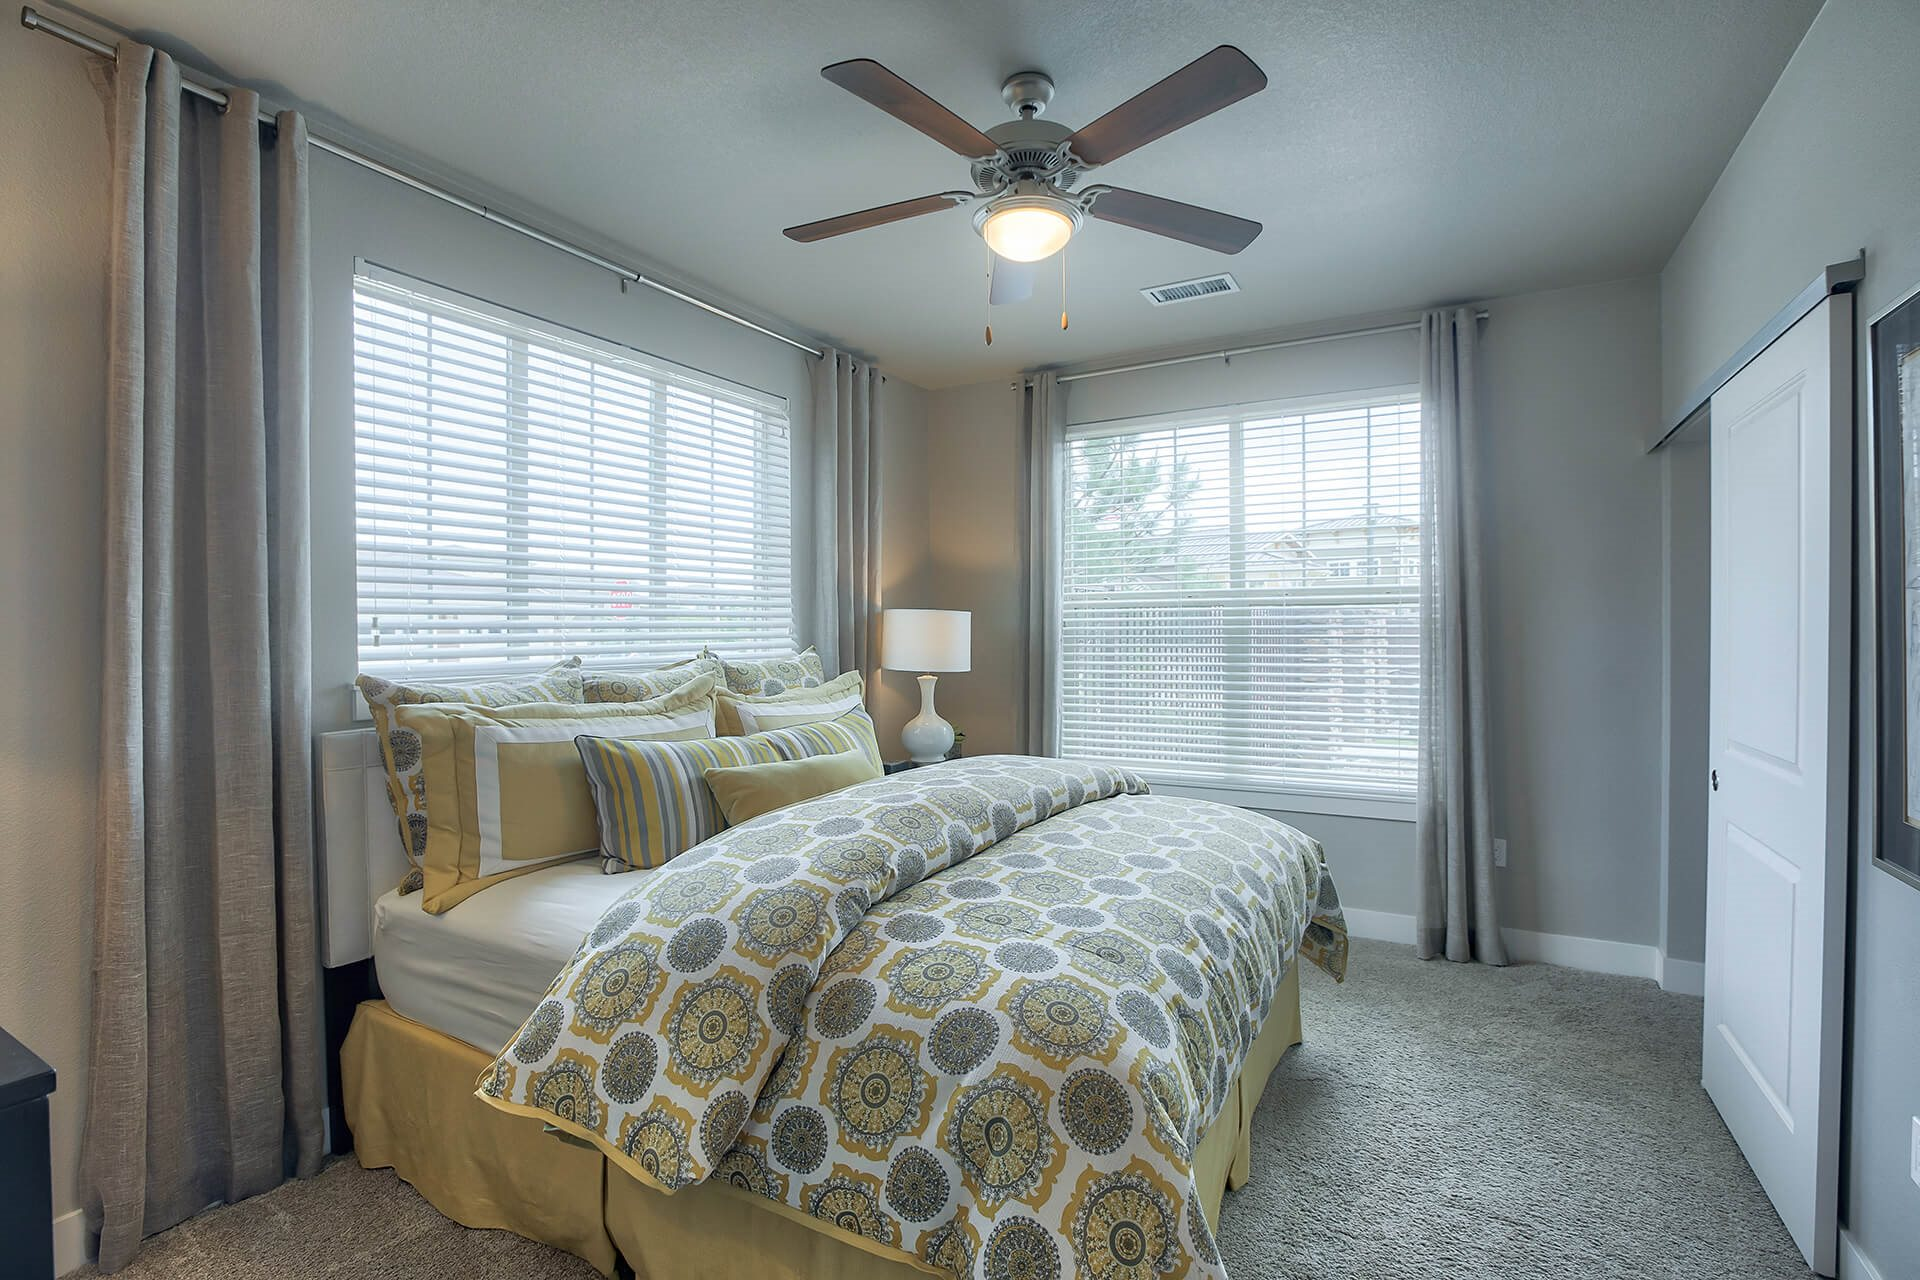 Wood Ceiling Fans in Bedrooms at Retreat at the Flatirons, Broomfield, 80020